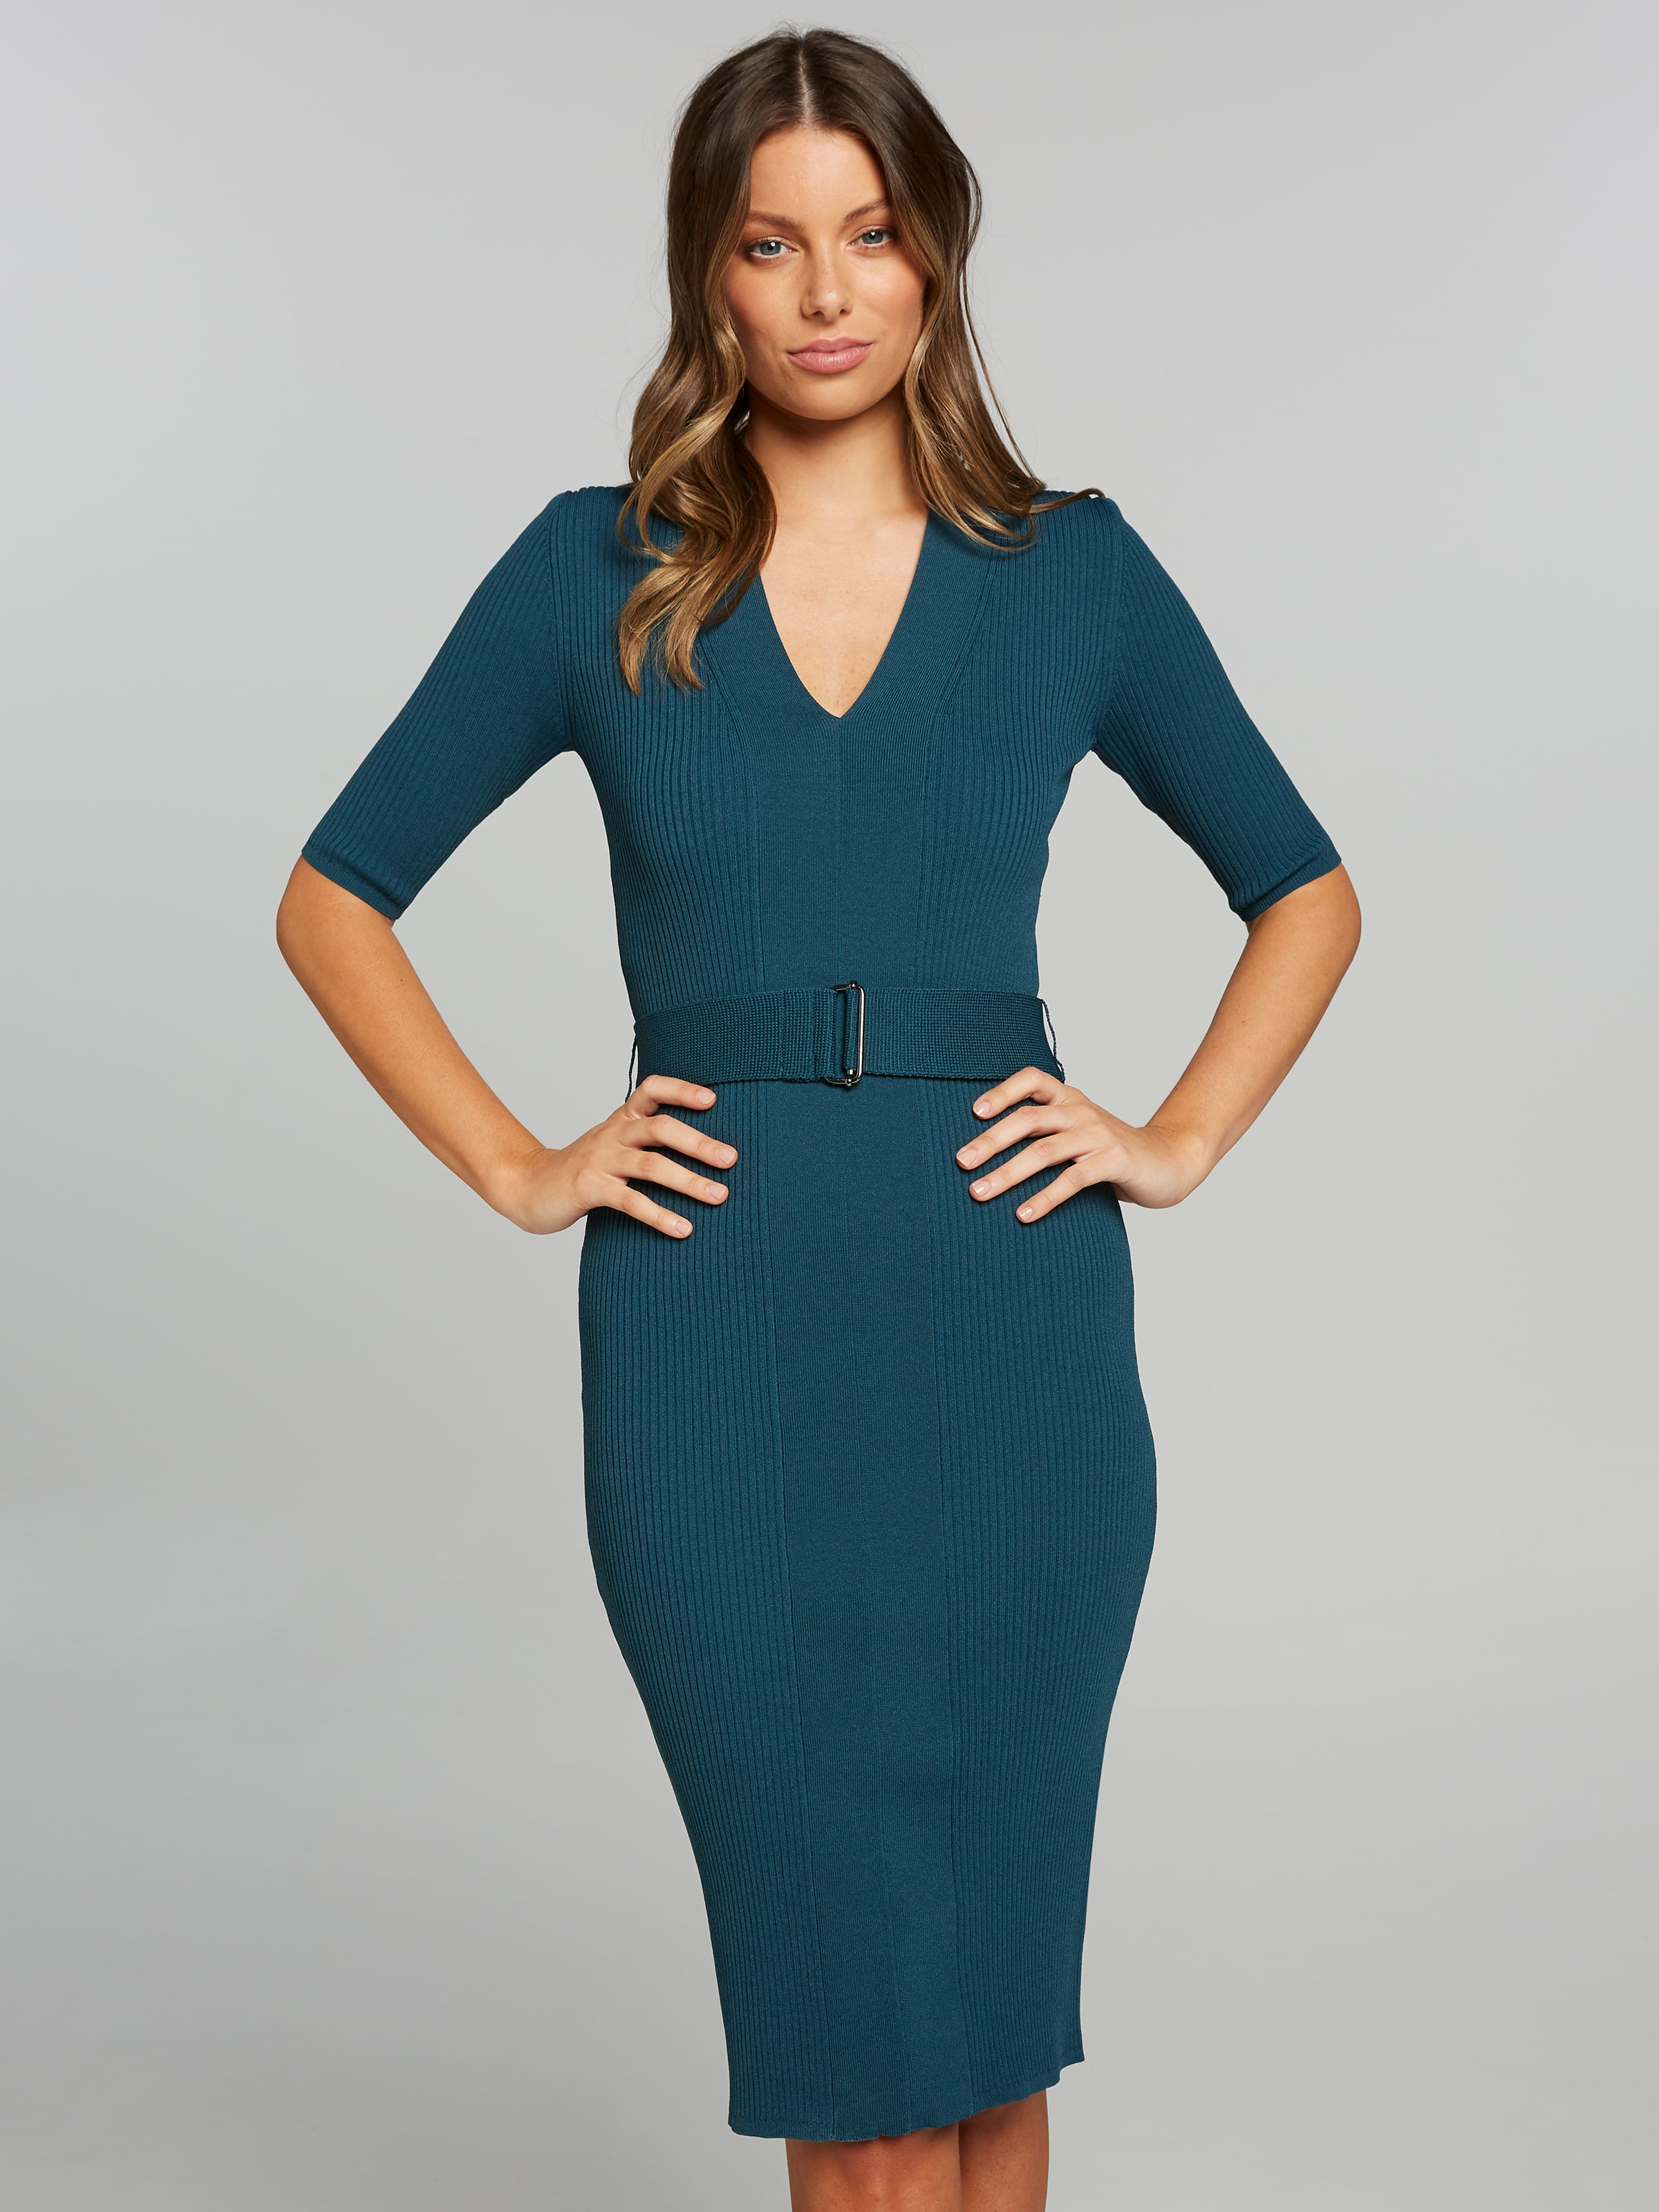 Workwear Refresh: 7 Items to Update Your Plus Size Office